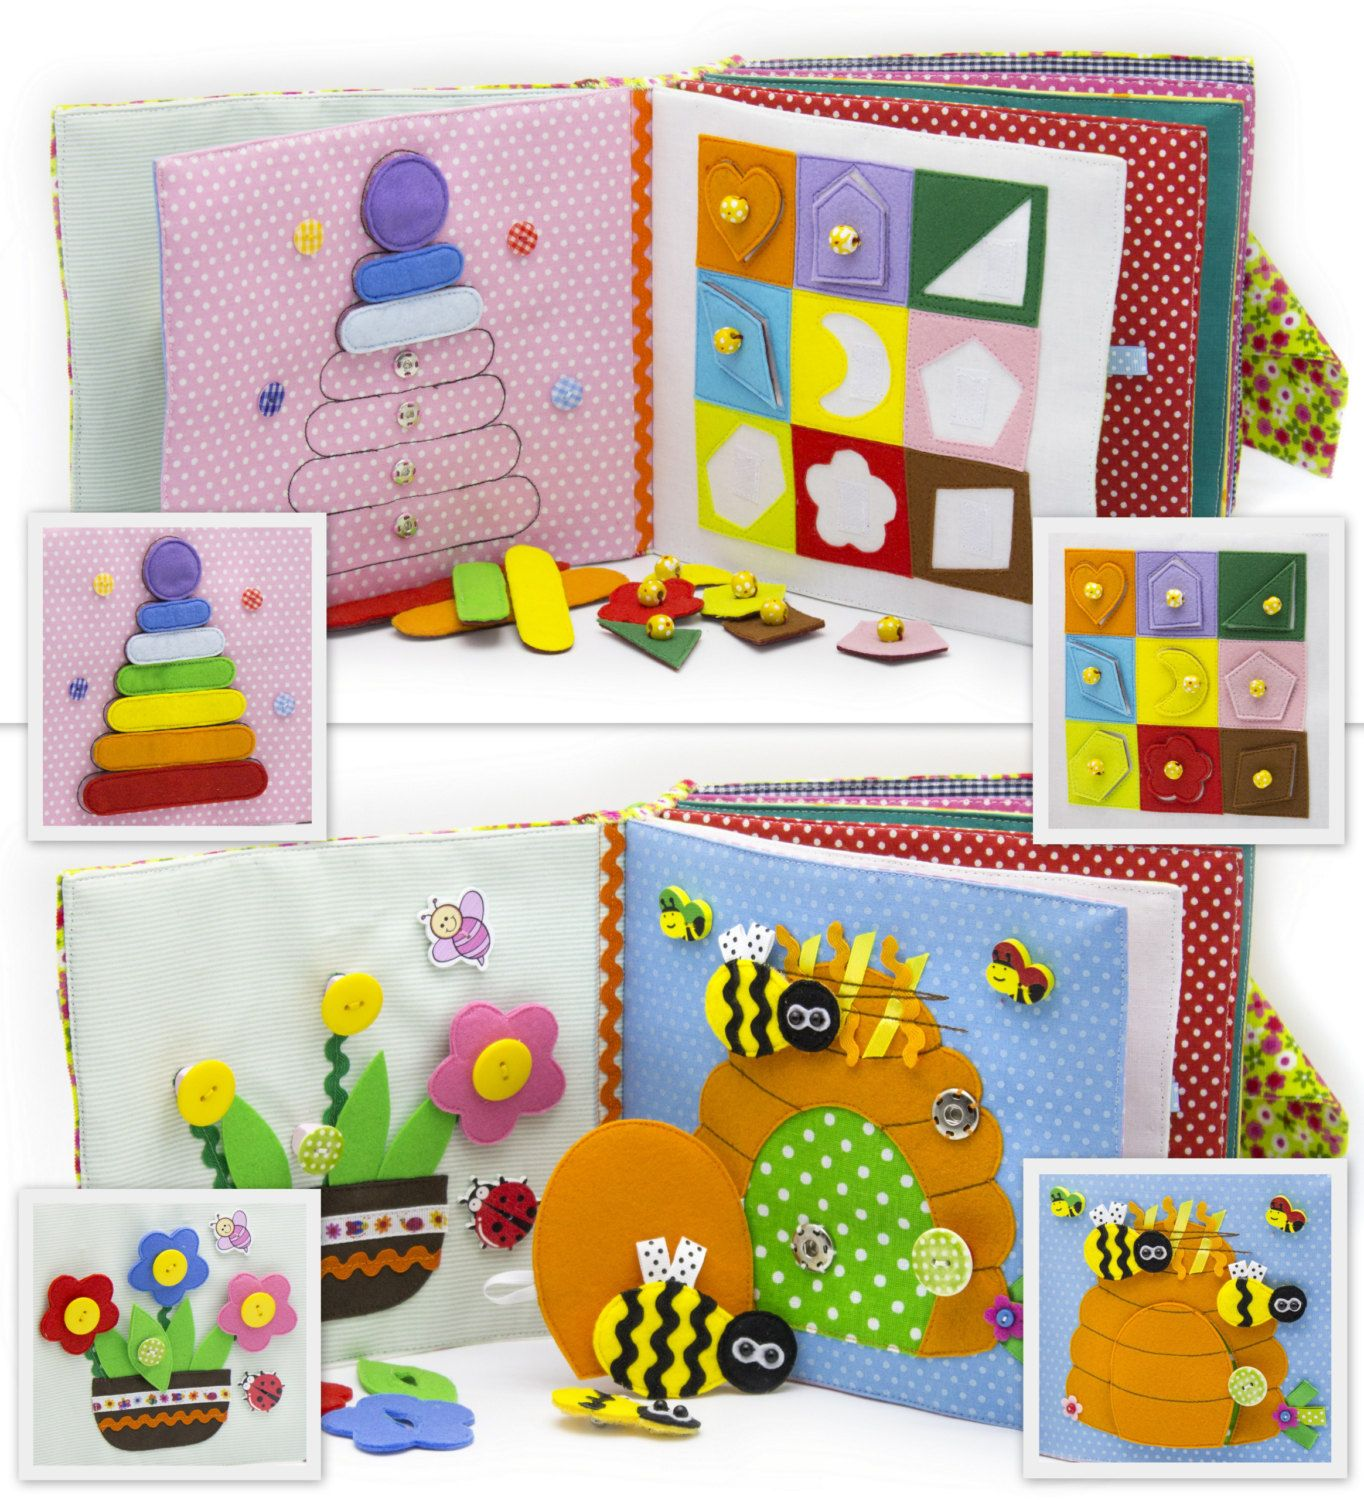 Regalo Bambina 4 Anni quiet soft busy book 12 felt pages (1-4 year) children's